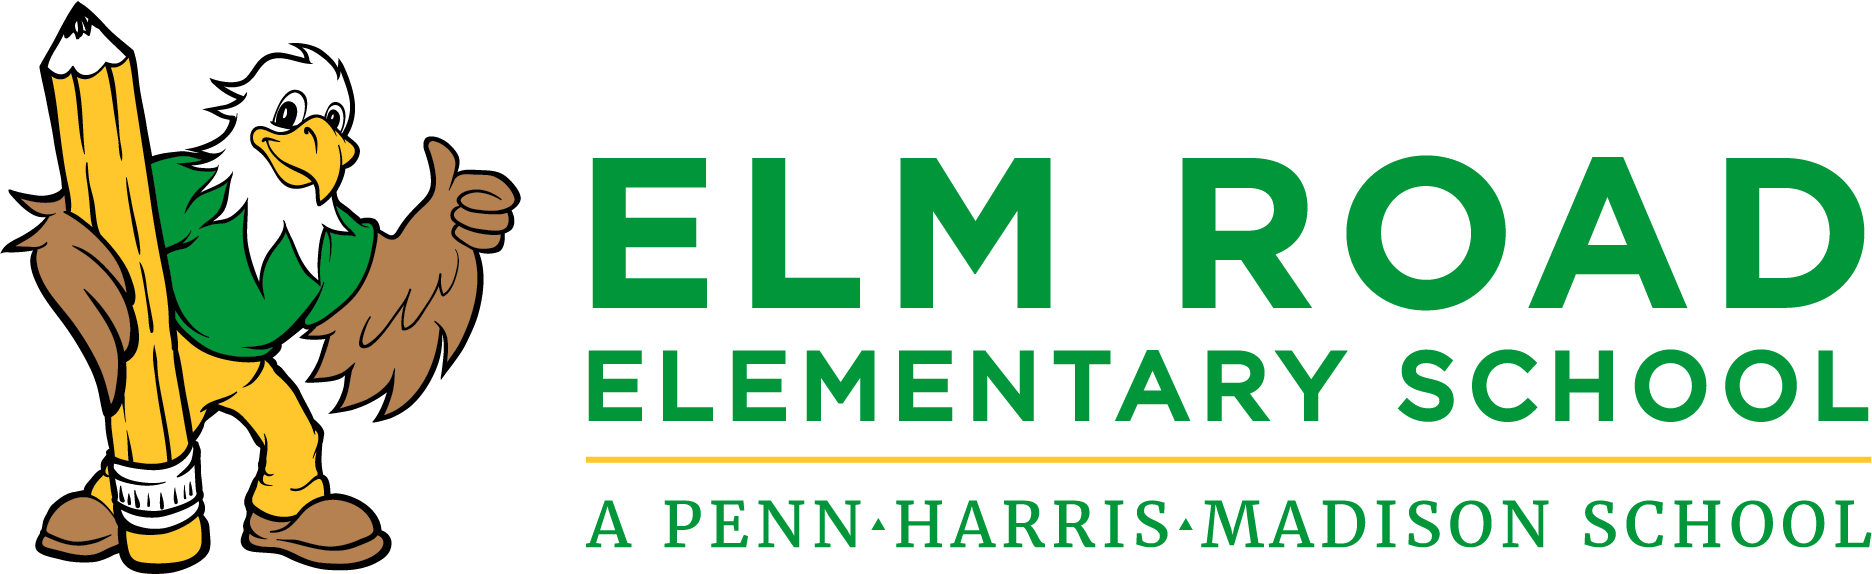 Elm Road Elementary School